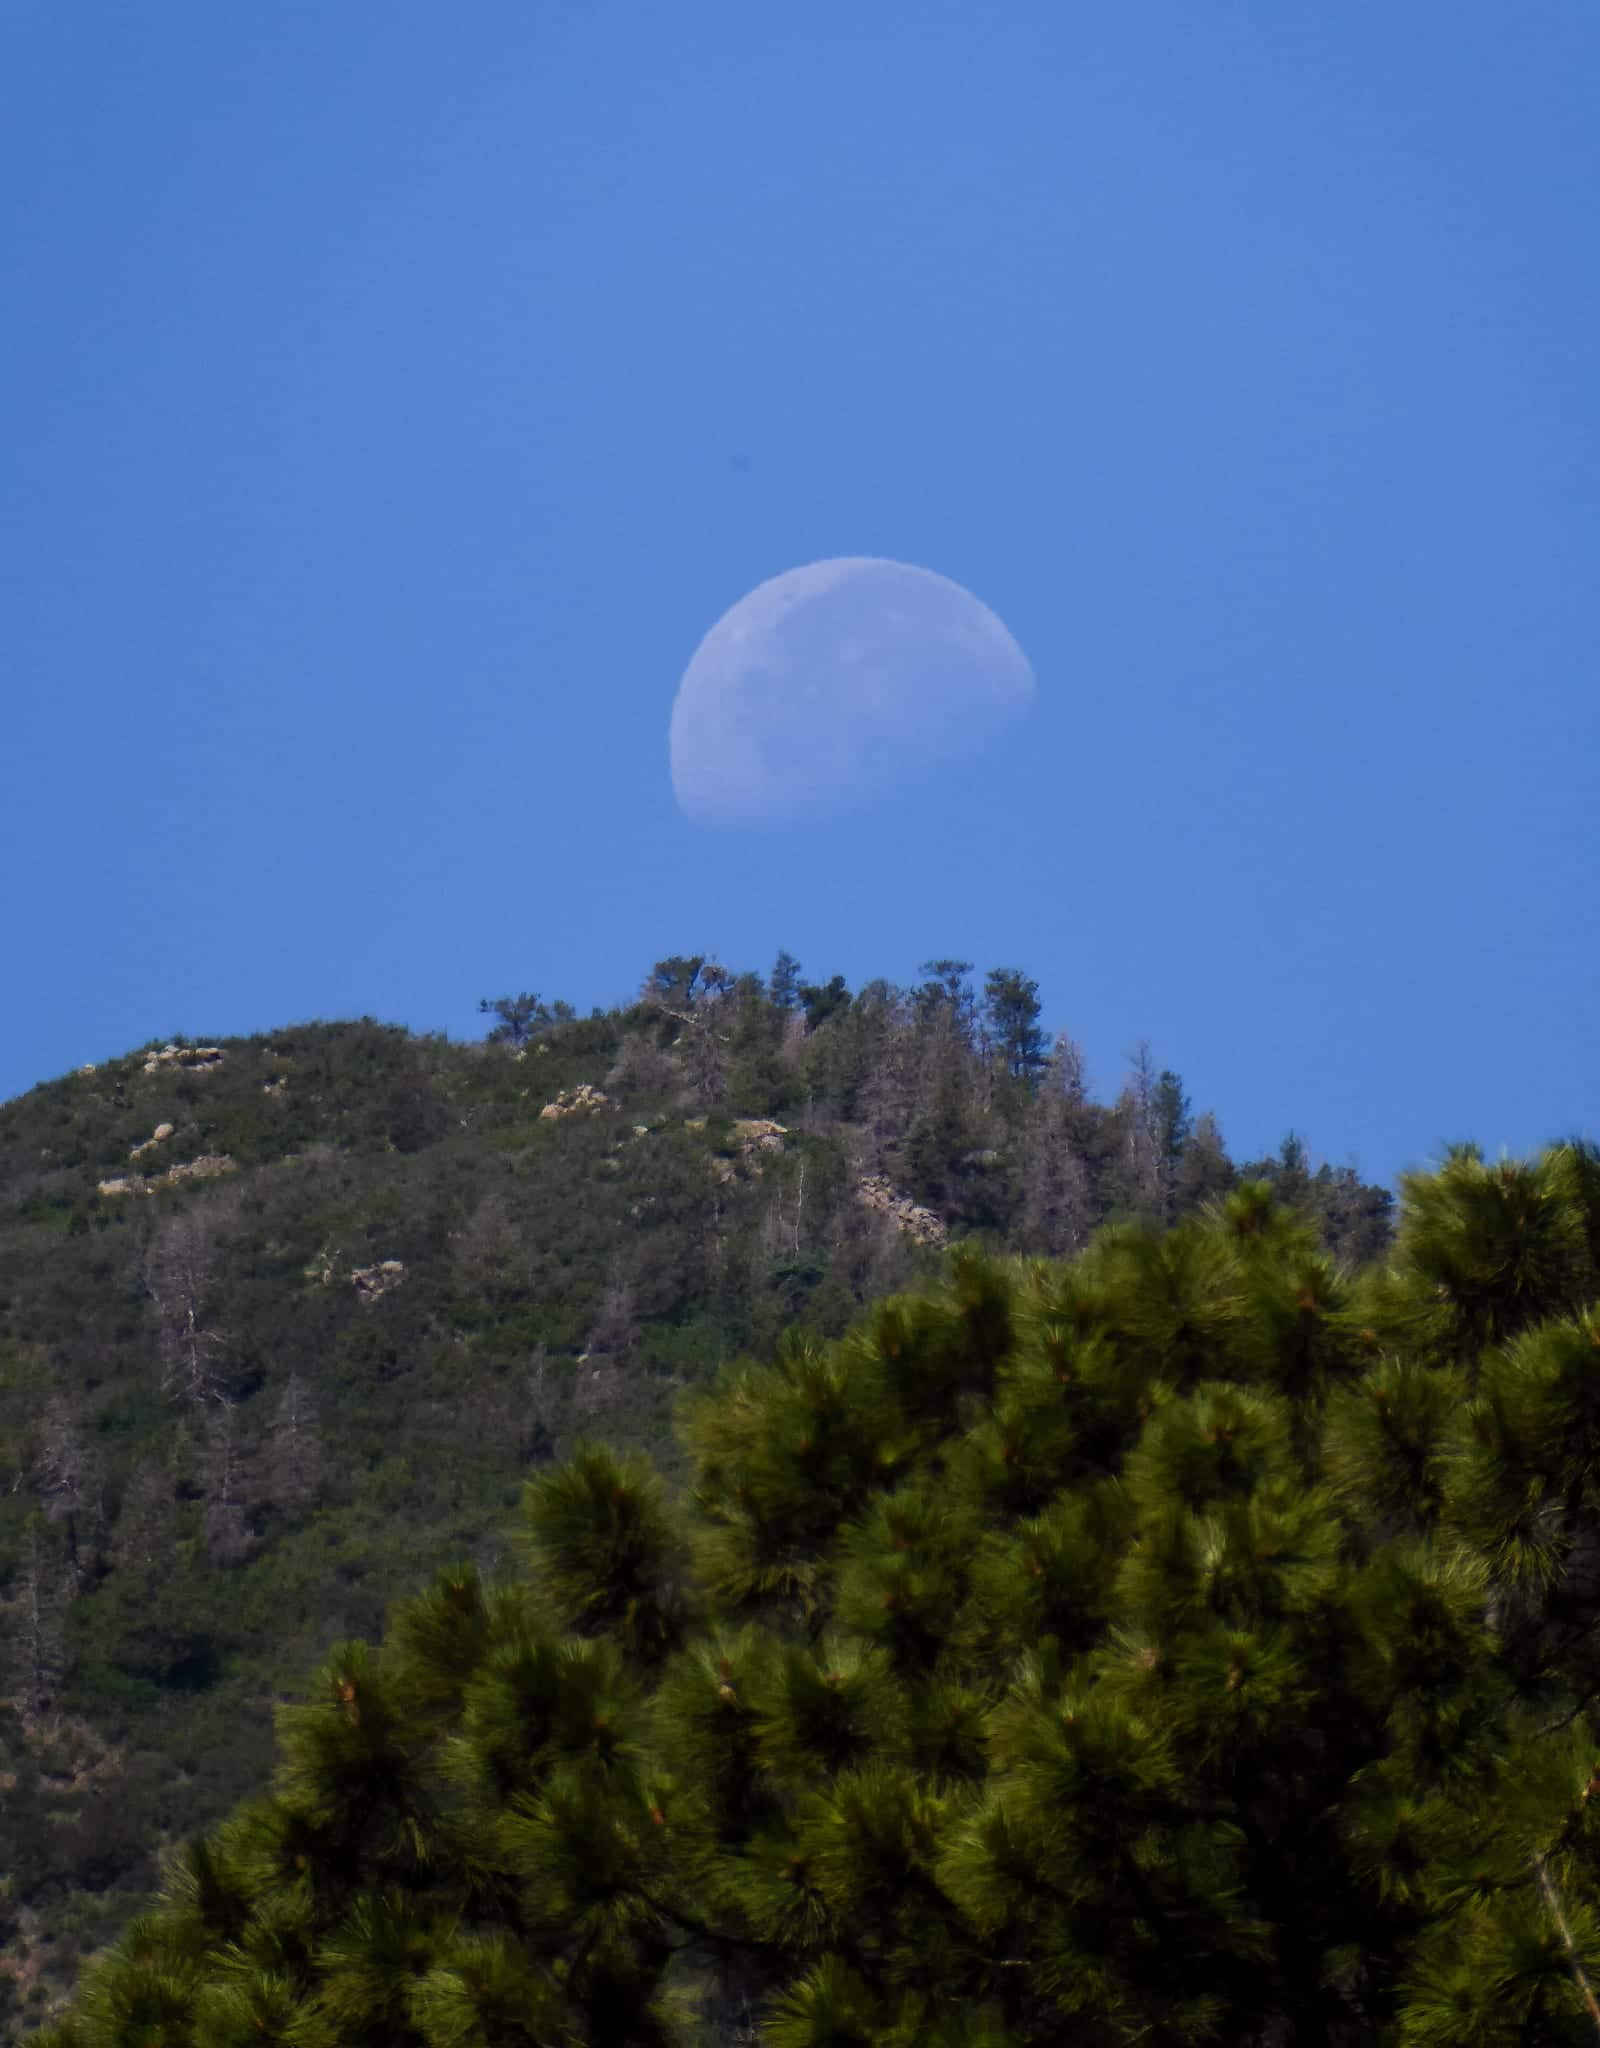 Cheyenne Mountain State Park Summit Moon Colorado Springs